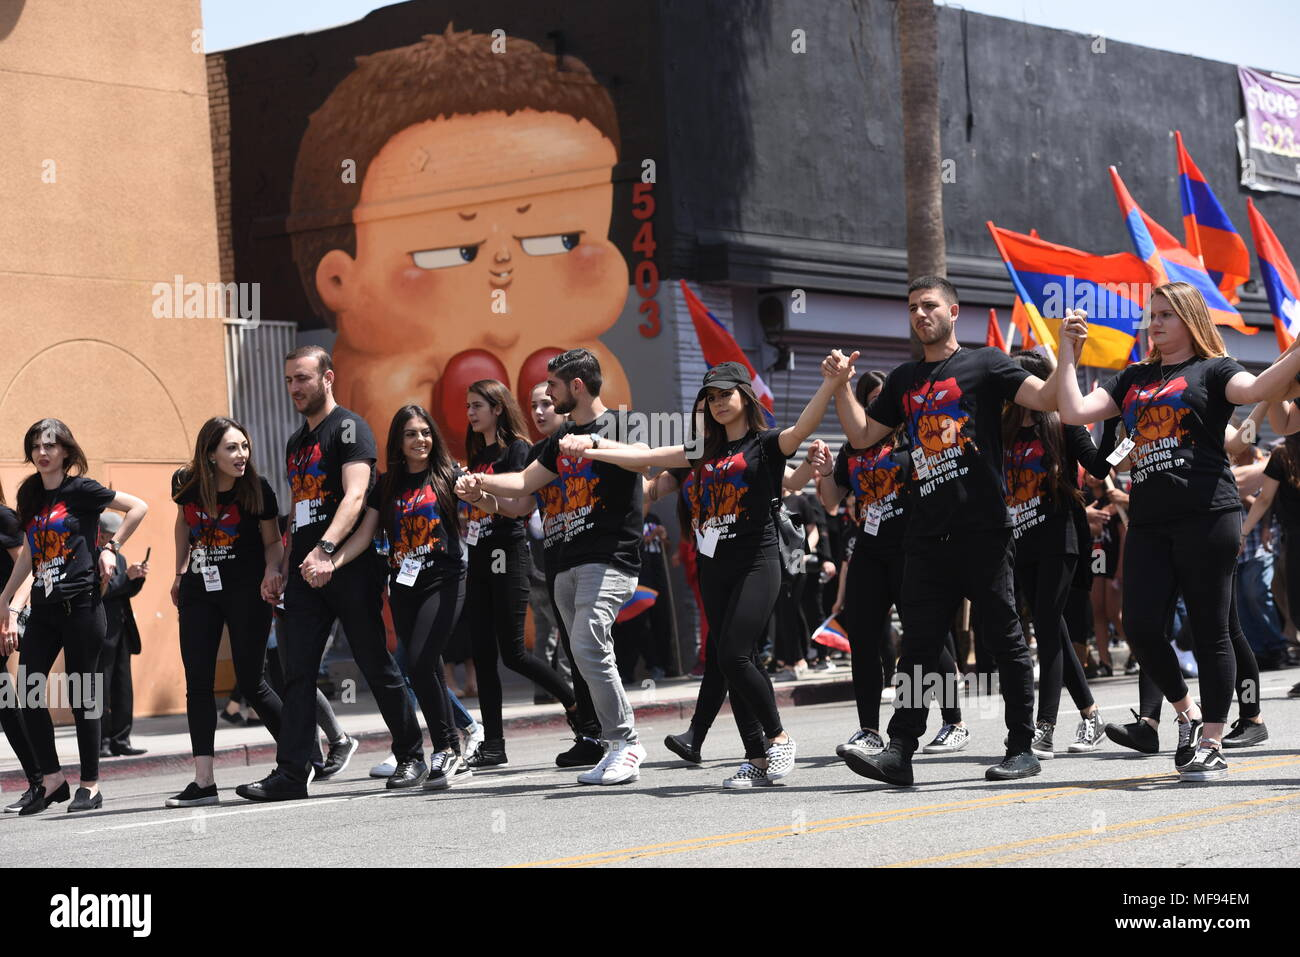 Los Angeles, USA. LOS ANGELES, CA - APRIL 24, 2018, Unified Young Armenians (UYA) organize the Armenian genocide commemoration event in Little Armenia.  Little Armenia is a community that is part of the Hollywood district of Los Angeles, California. Credit: Hayk Shalunts/Alamy Live News - Stock Image